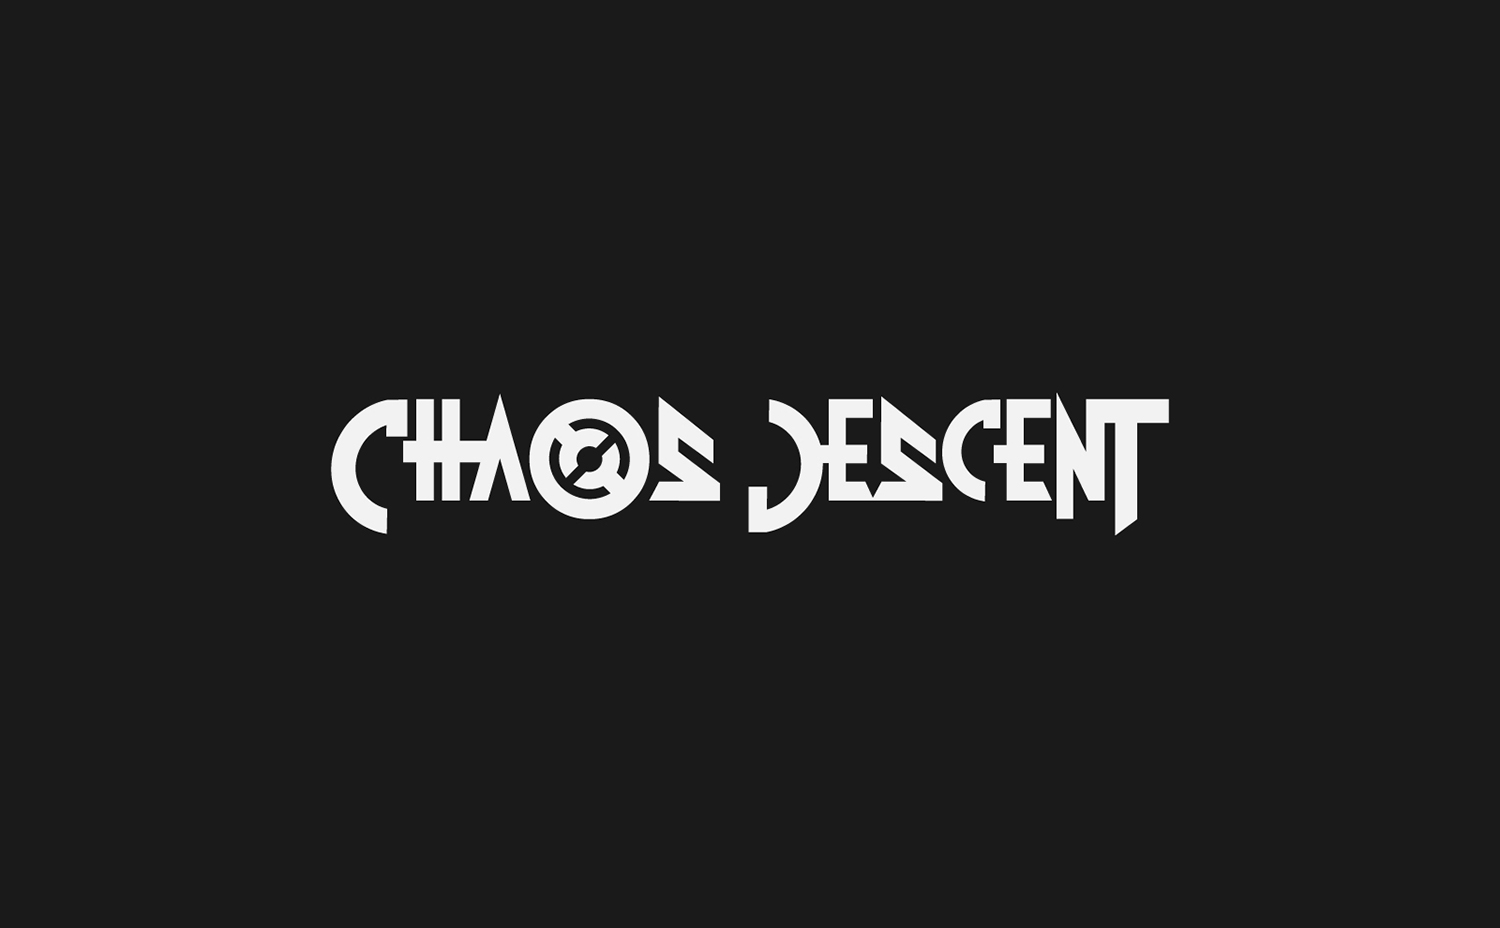 Chaos-Descent-A New- Add3